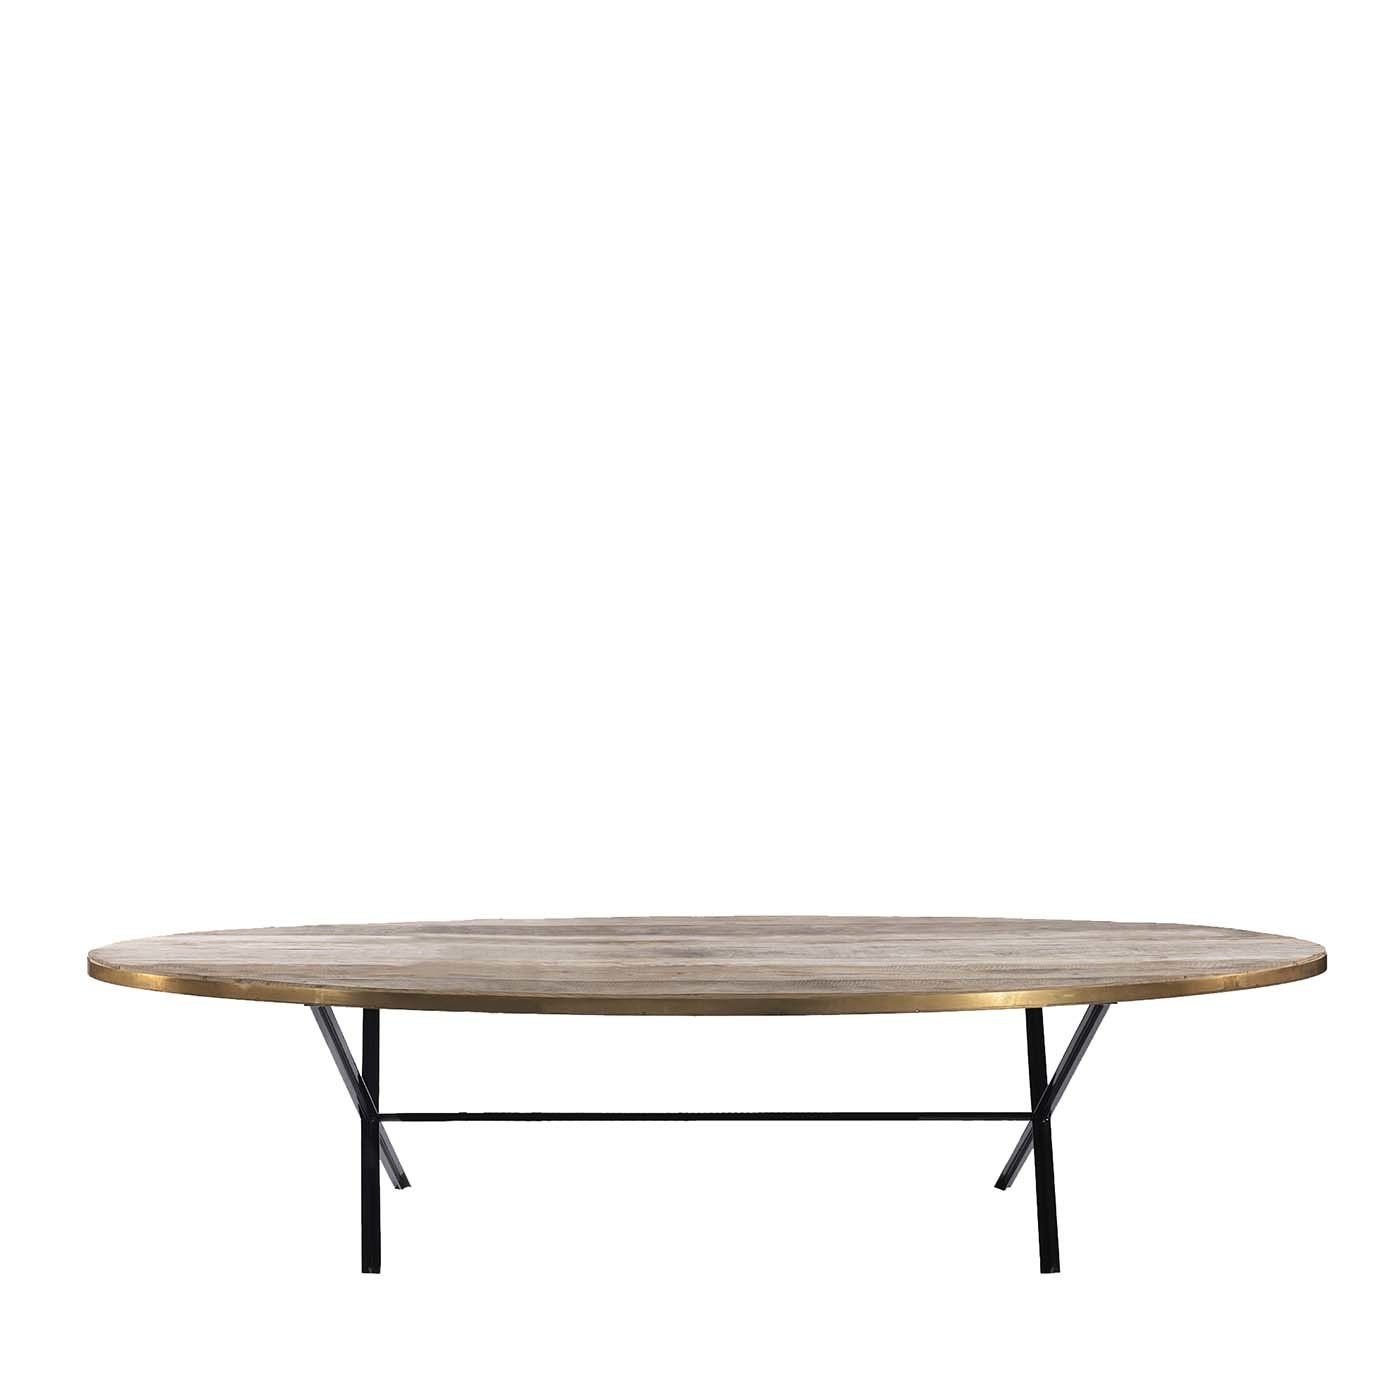 The Oval Dining Table B B For Reschio In 2021 Oval Table Dining Dining Table Marble Dining Table